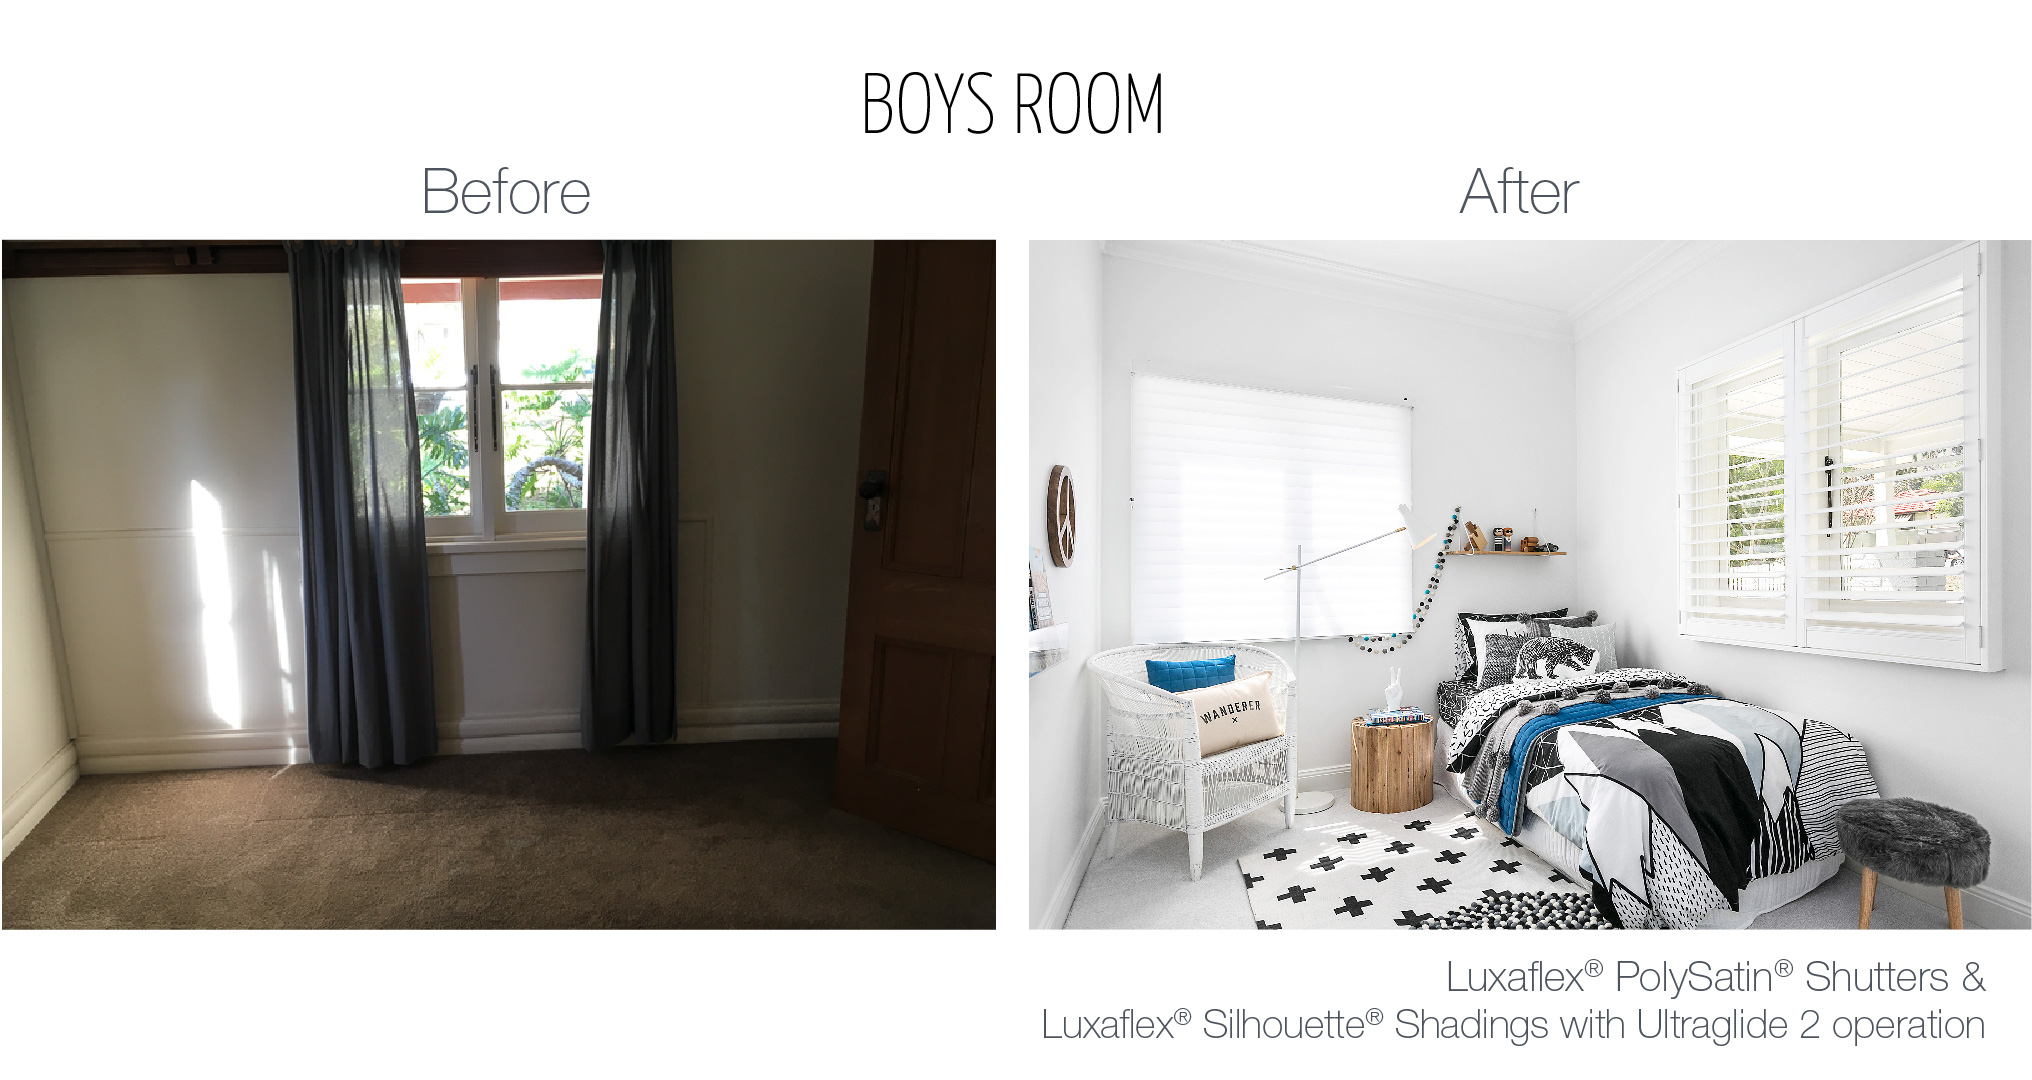 Luxaflex - Blog - Three Birds - Boys Room